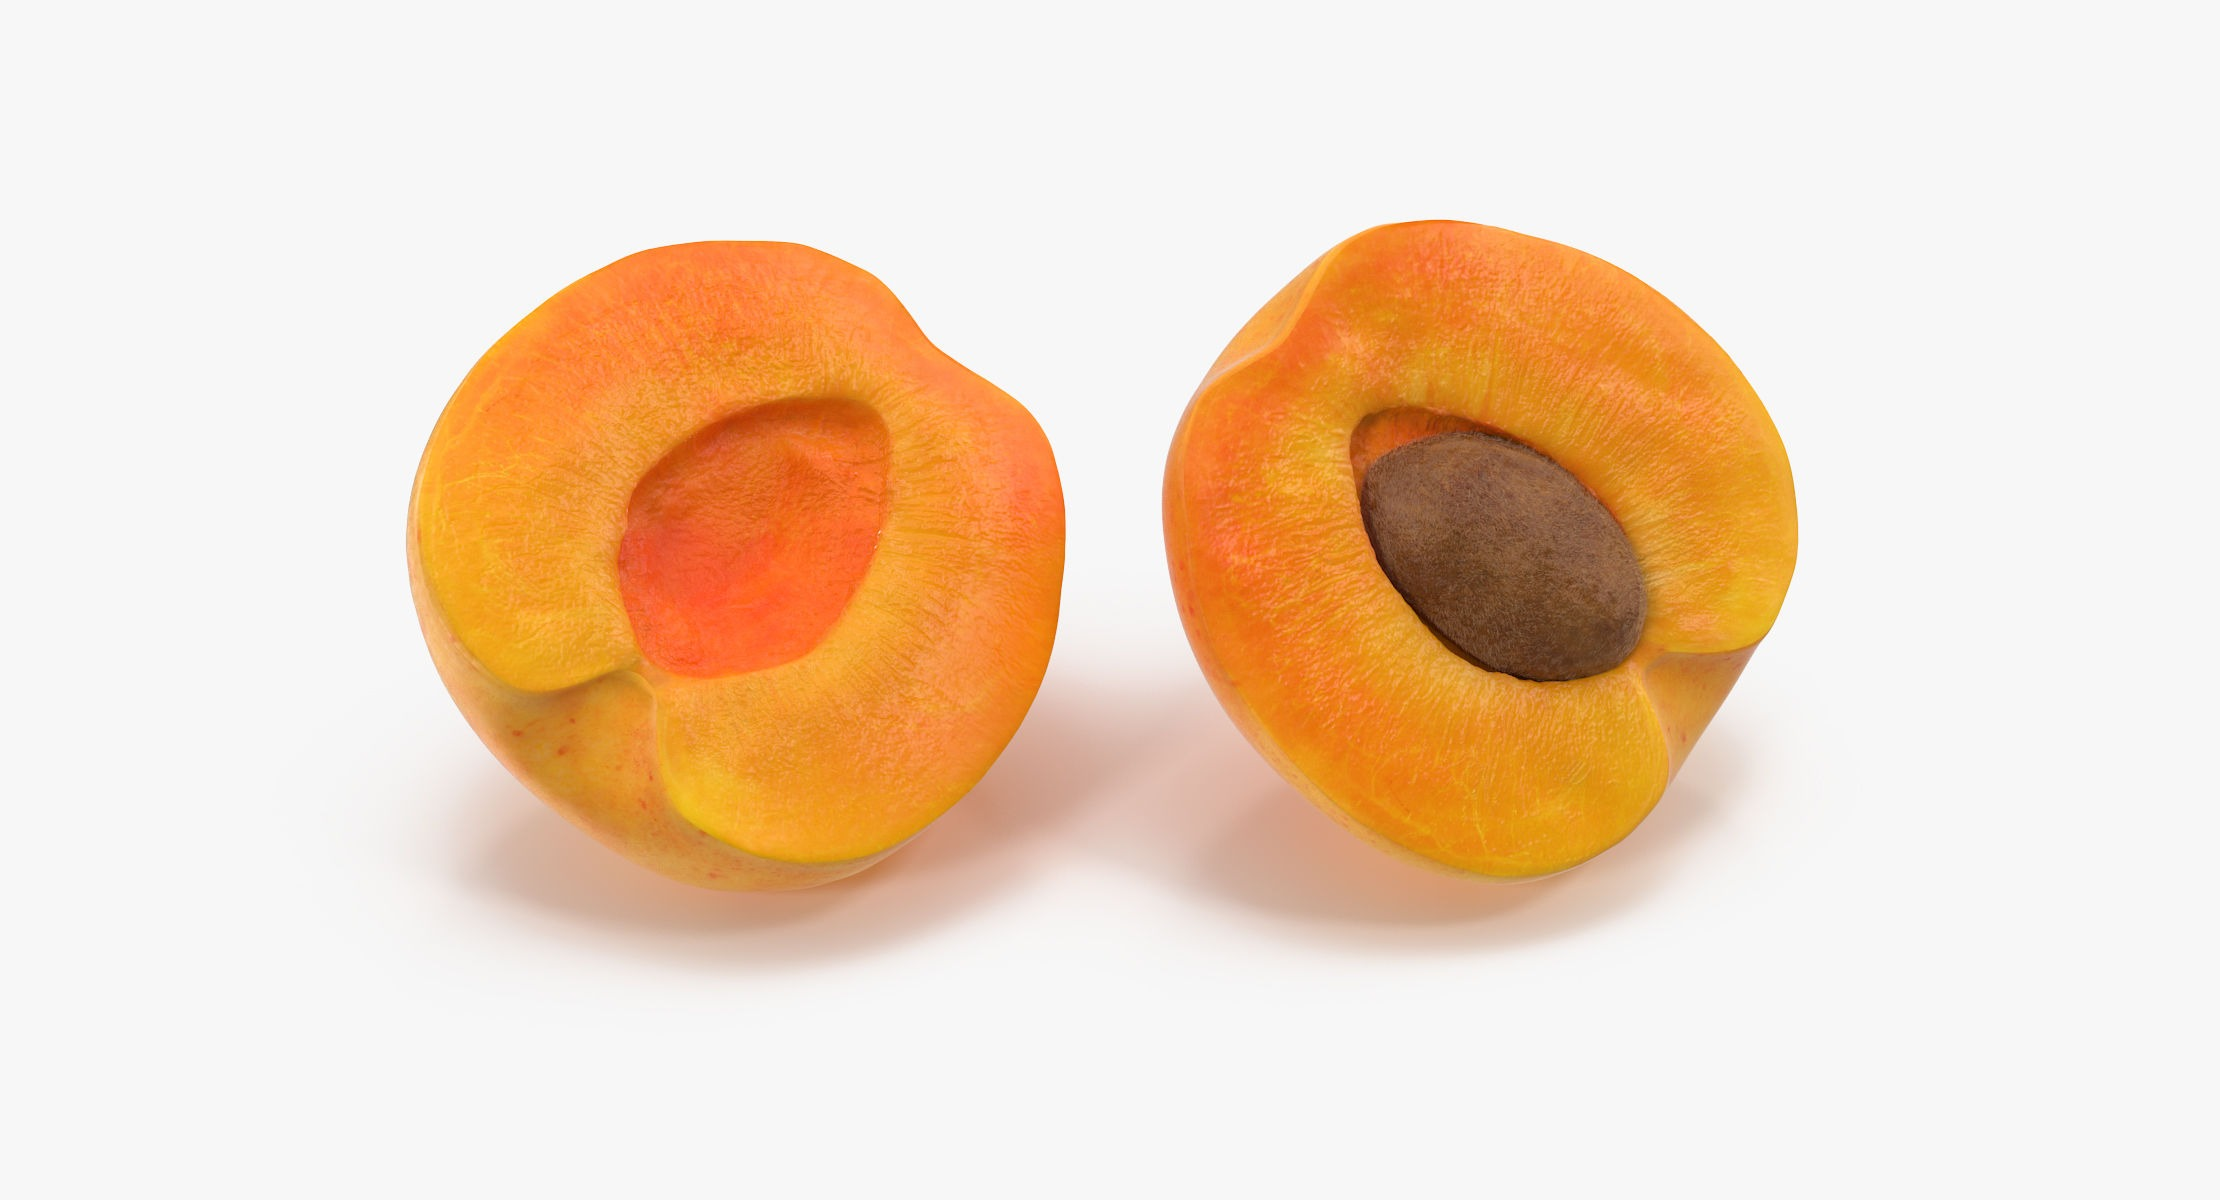 Apricot Cross Section 01 - reel 1